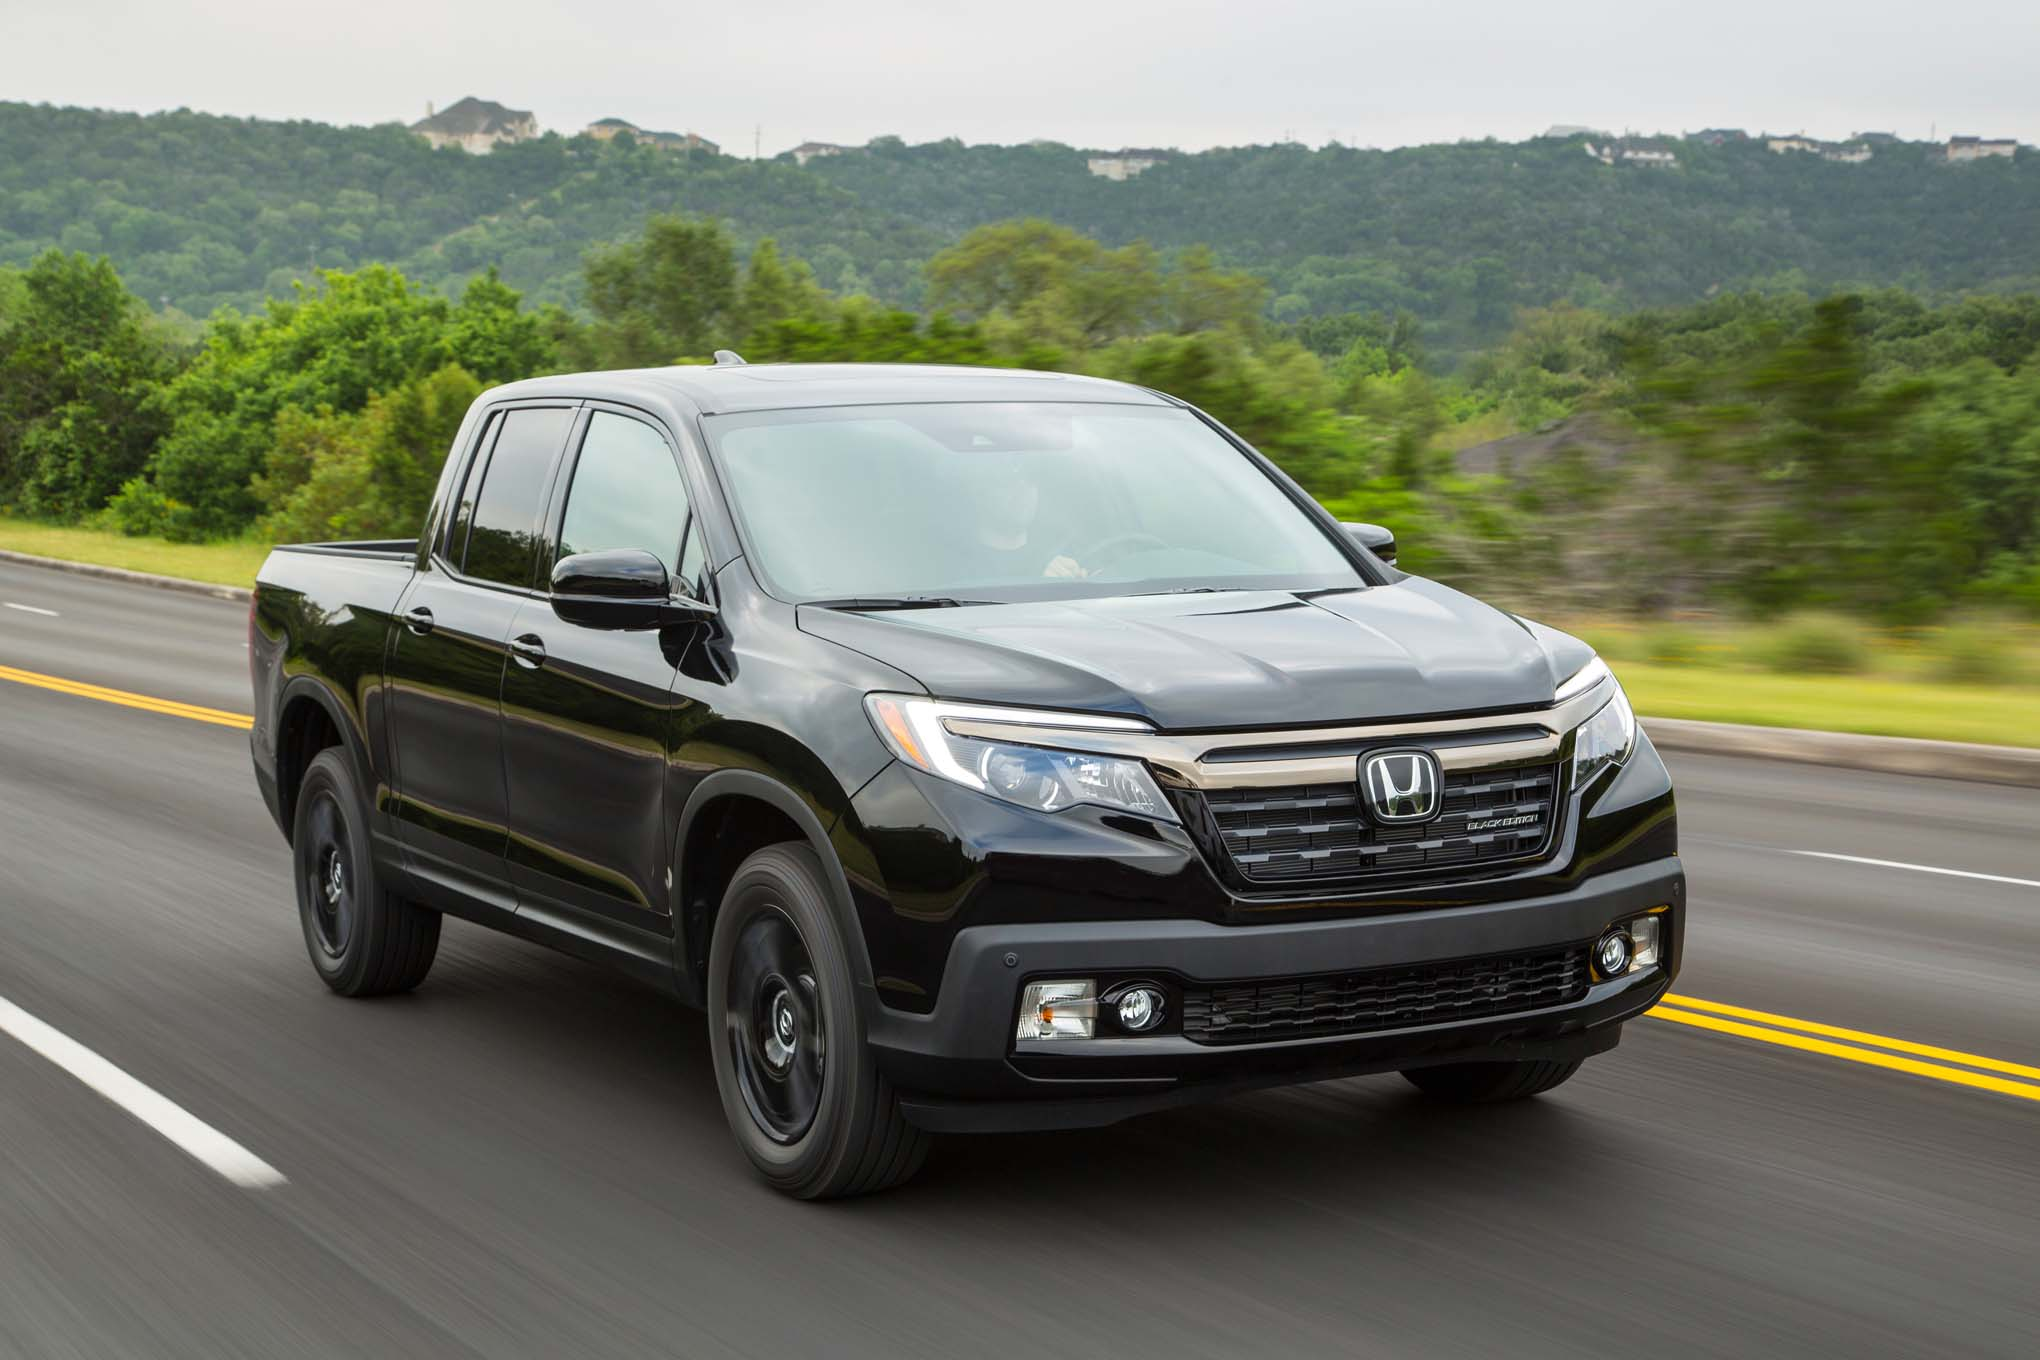 2017 Honda Ridgeline Black Edition front three quarter in motion 02 by design 2017 honda ridgeline honda ridgeline fuse box diagram at panicattacktreatment.co